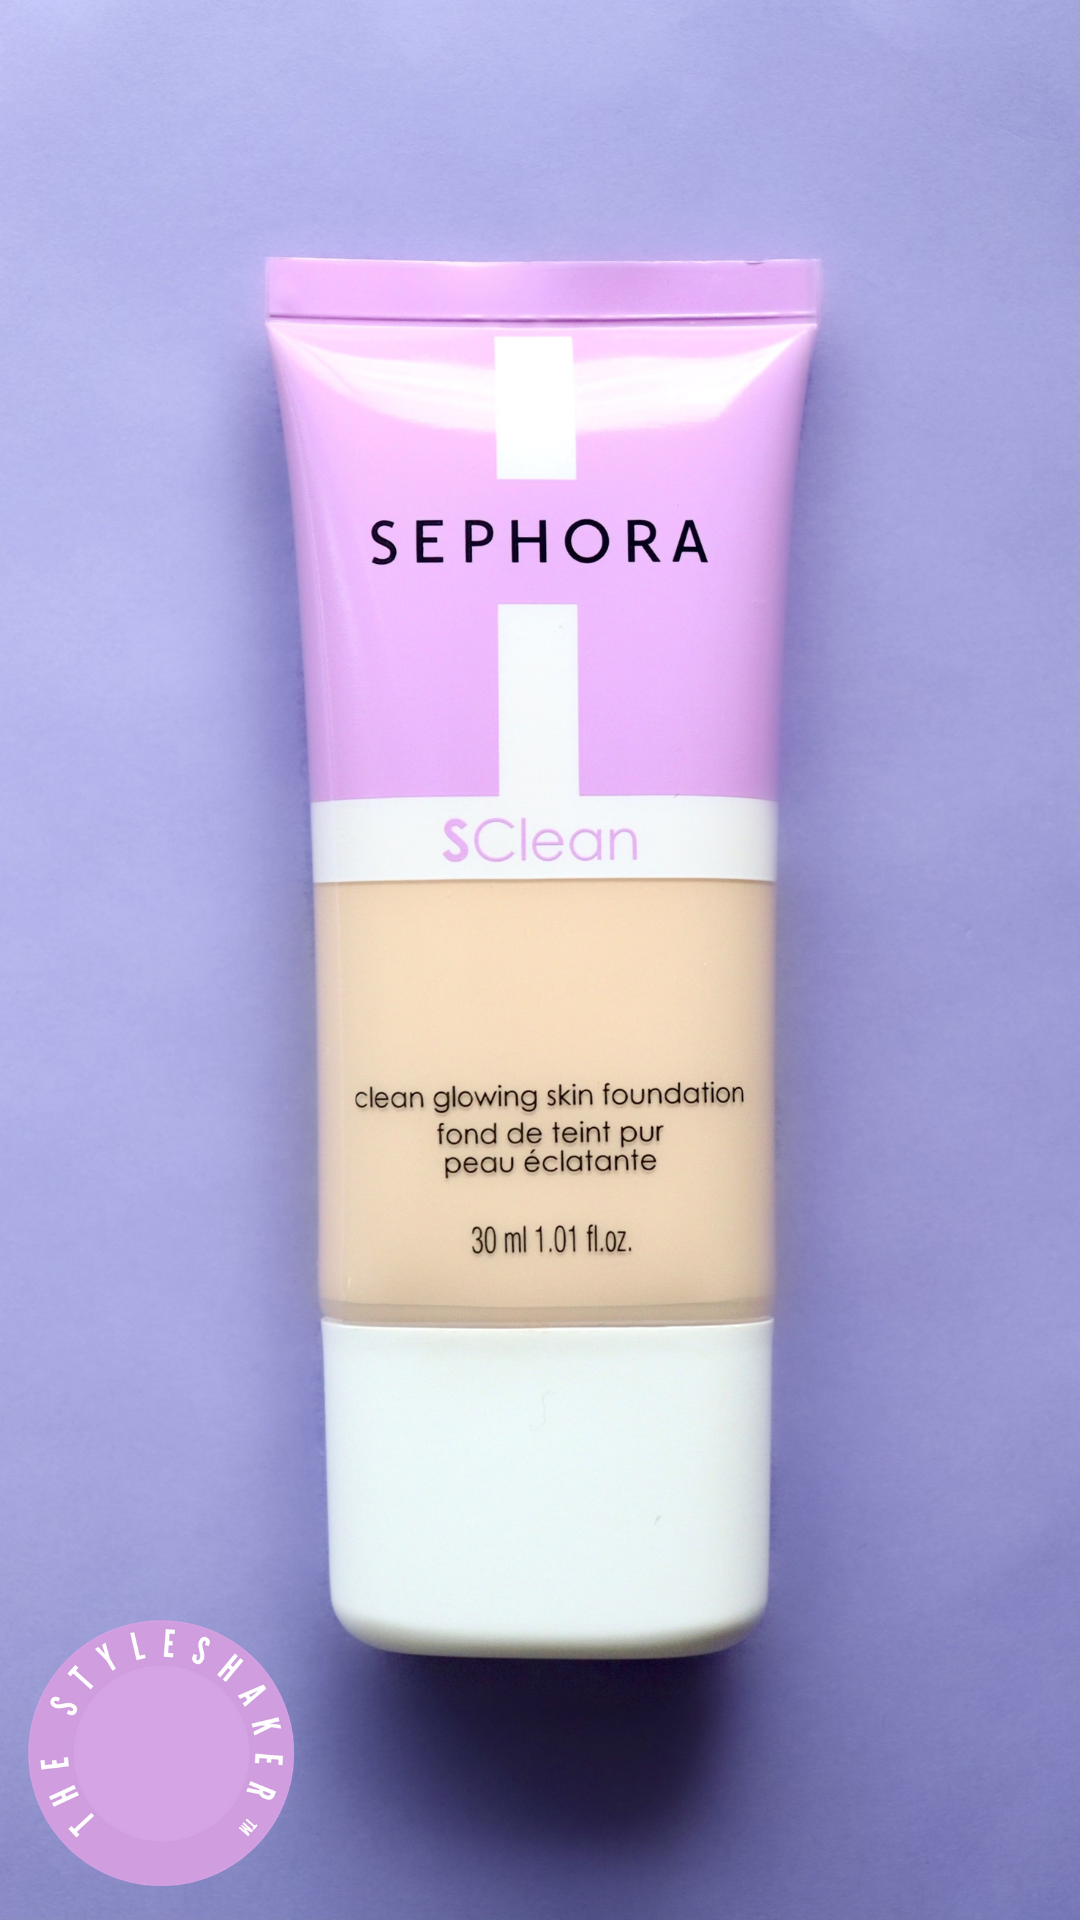 Honest Review Of The Sephora Collection Clean Glowing Skin Foundation The Styleshaker Scorecard The Styleshaker A Guide To Clean Beauty Skincare More Honest Reviews